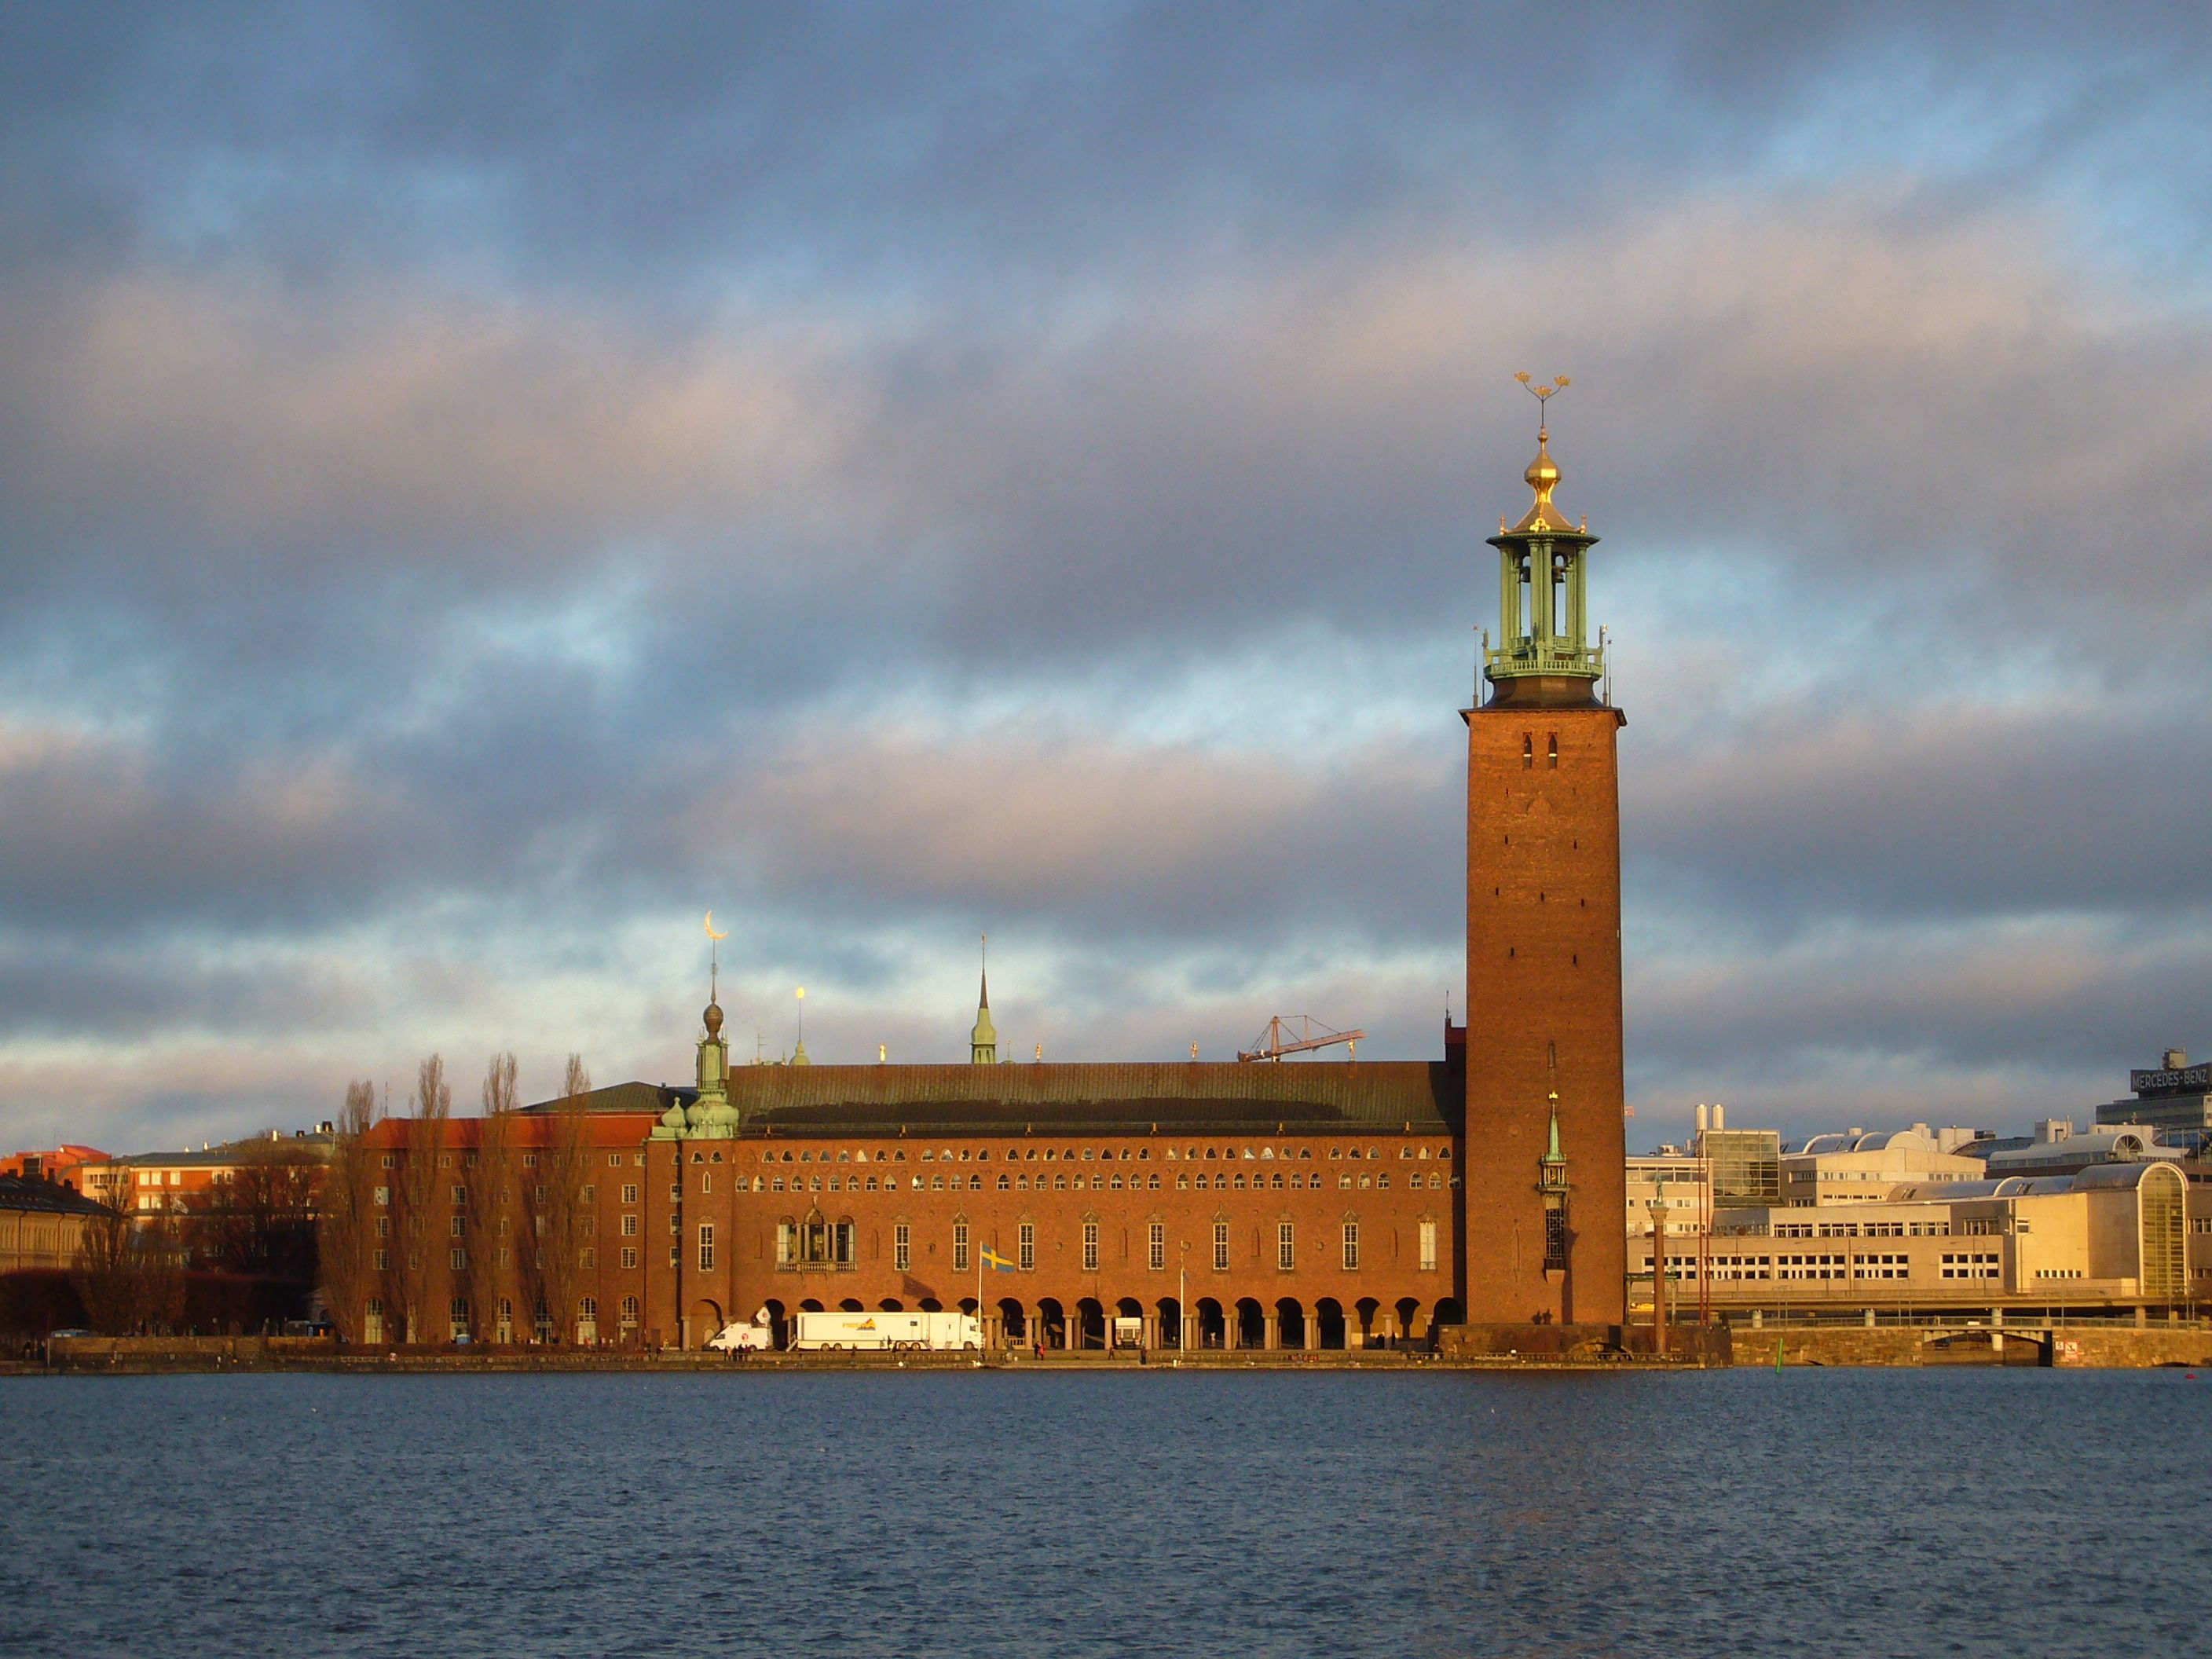 Stockholm in winter: A photo essay